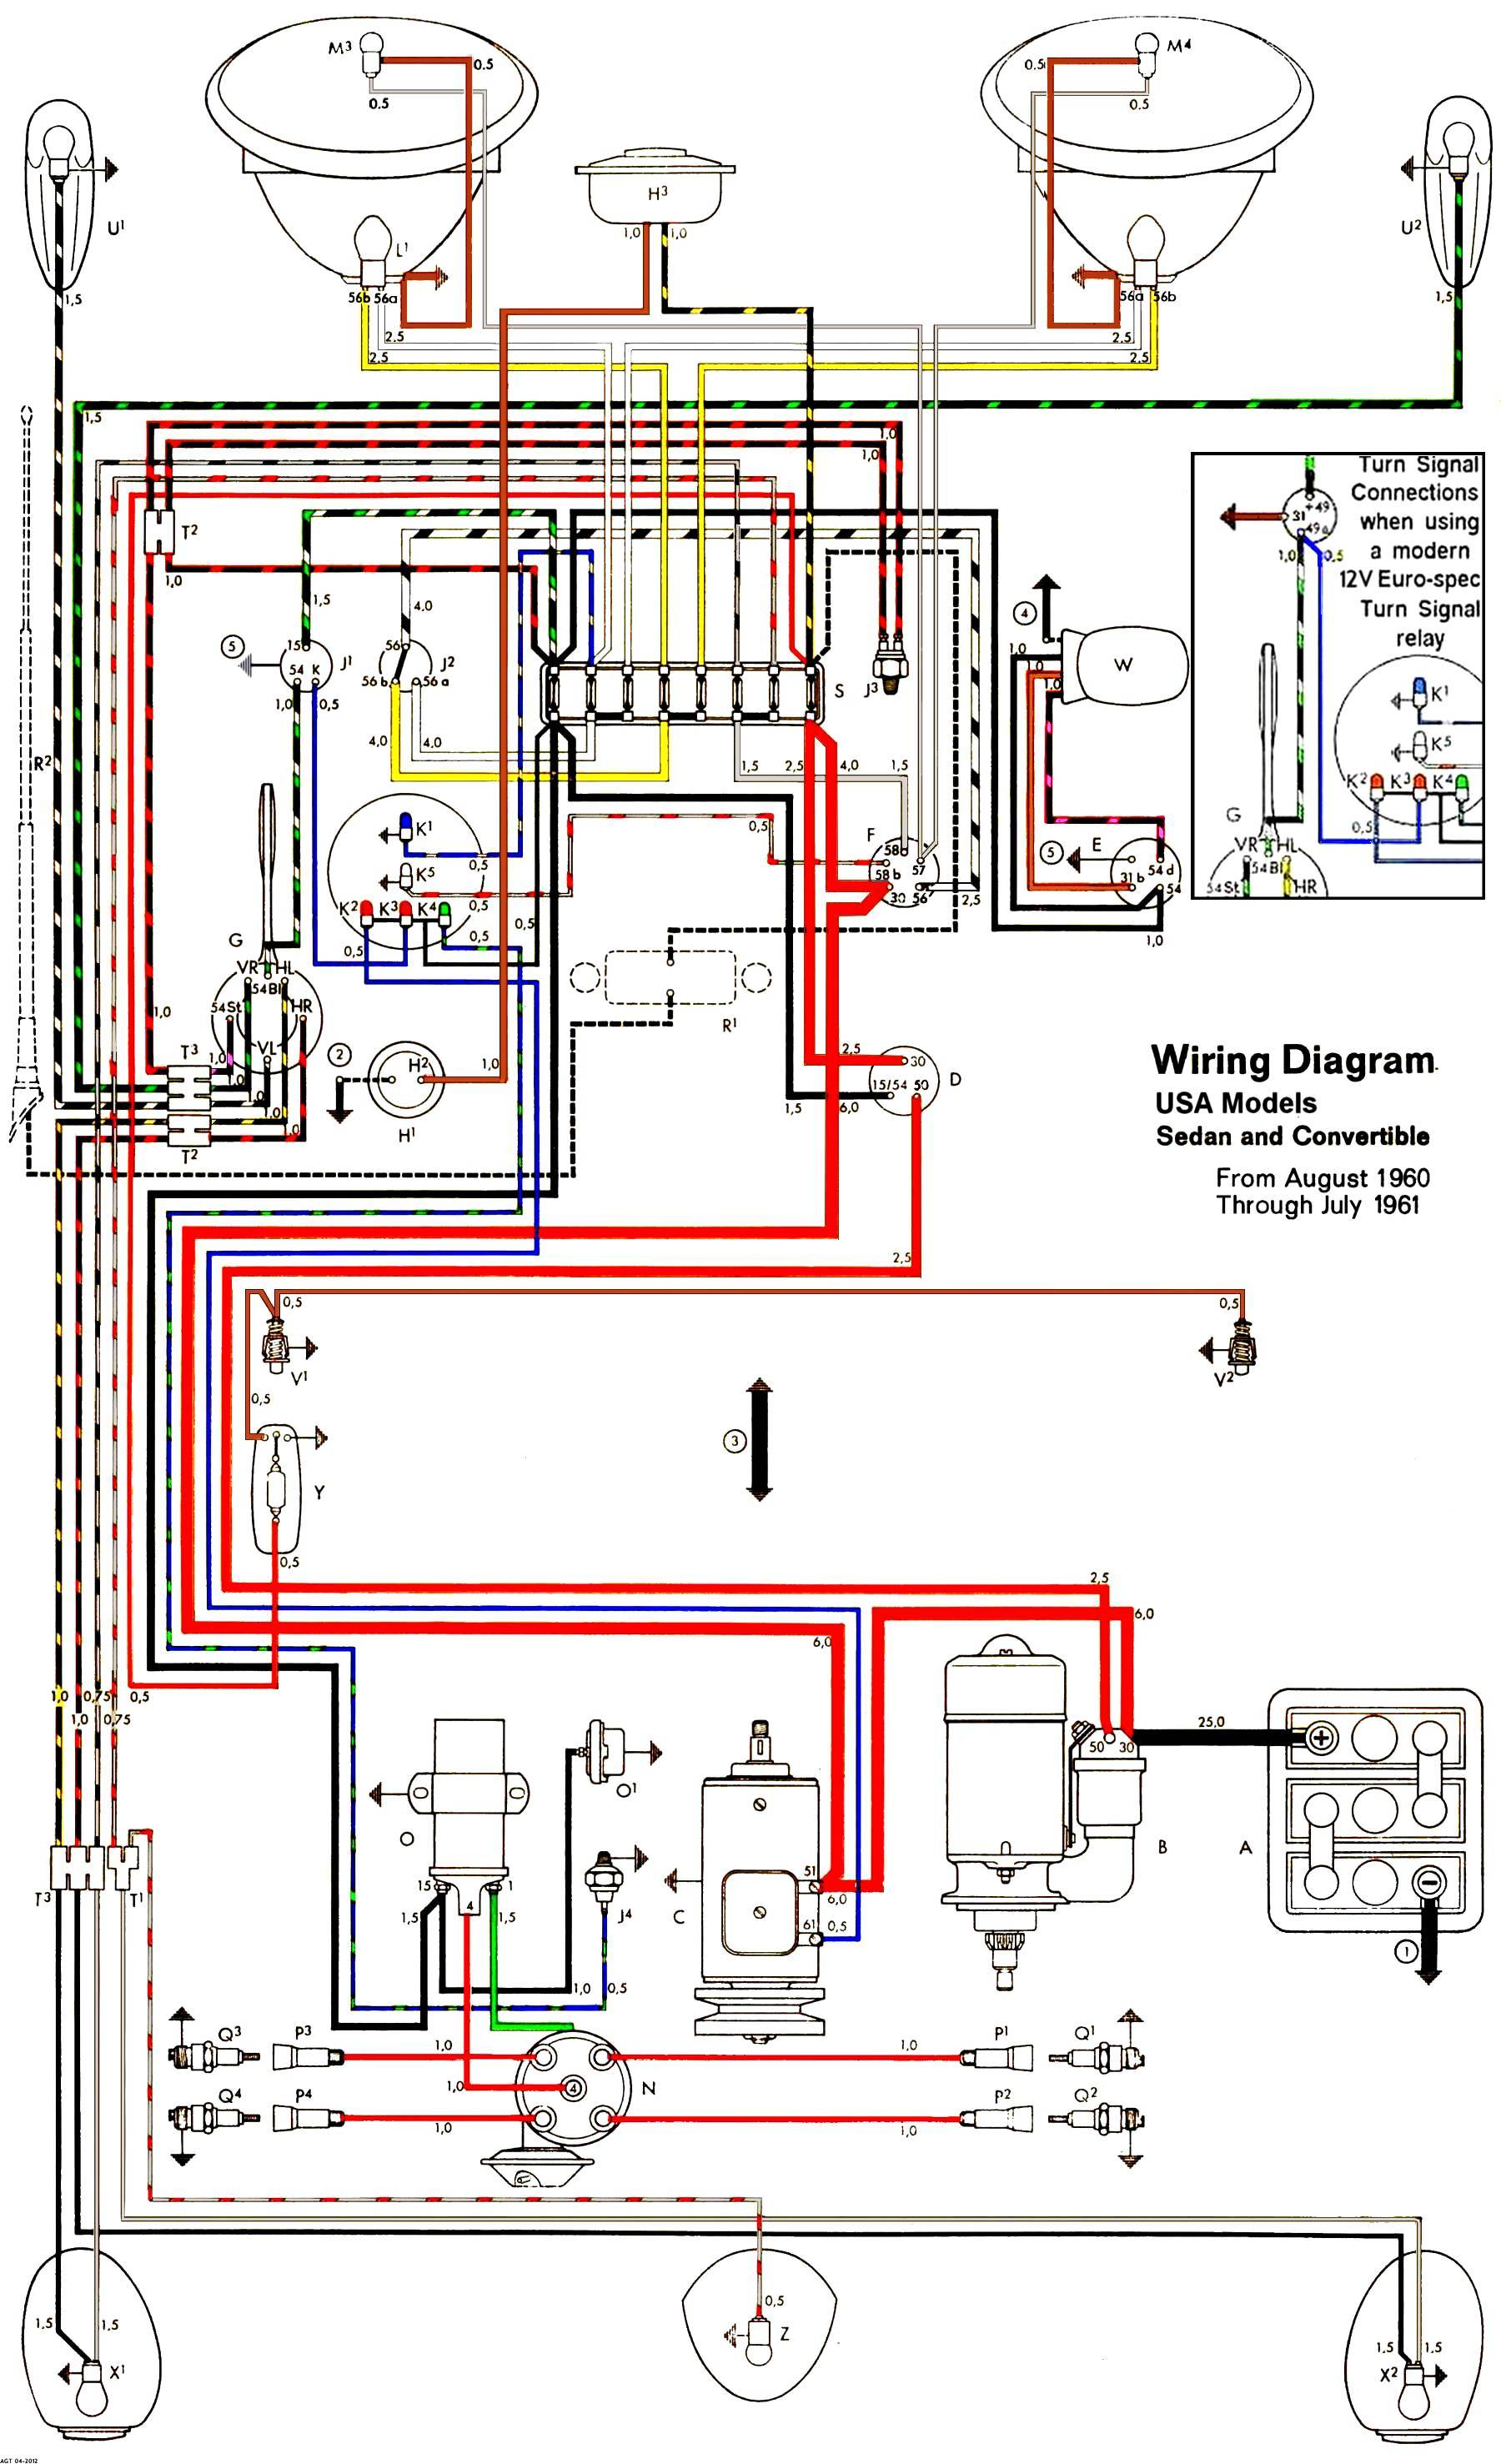 T1 Wiring Diagram Data Ethernet Cord Schema Diagrams Rj45 Cable Jack Library